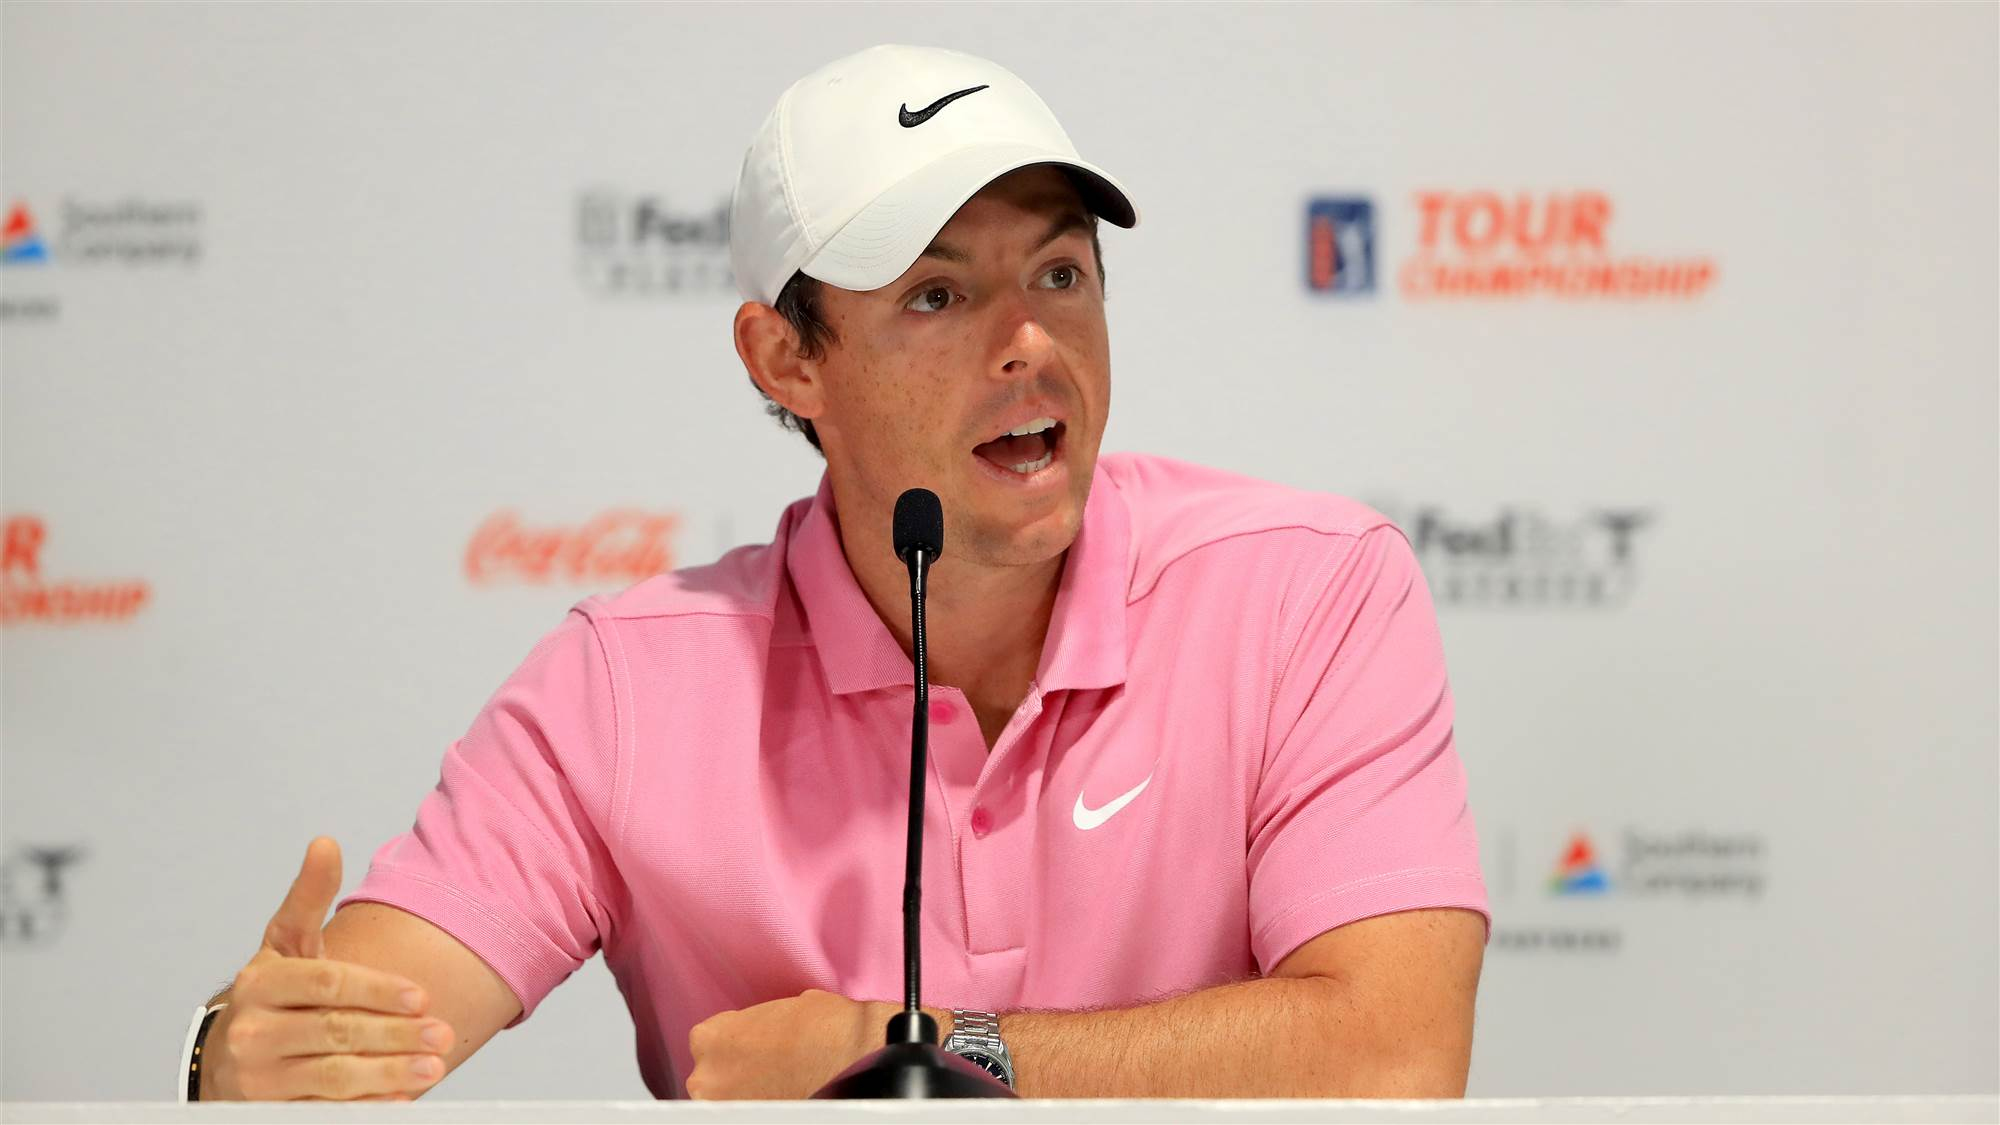 Fans don't care about money: McIlroy